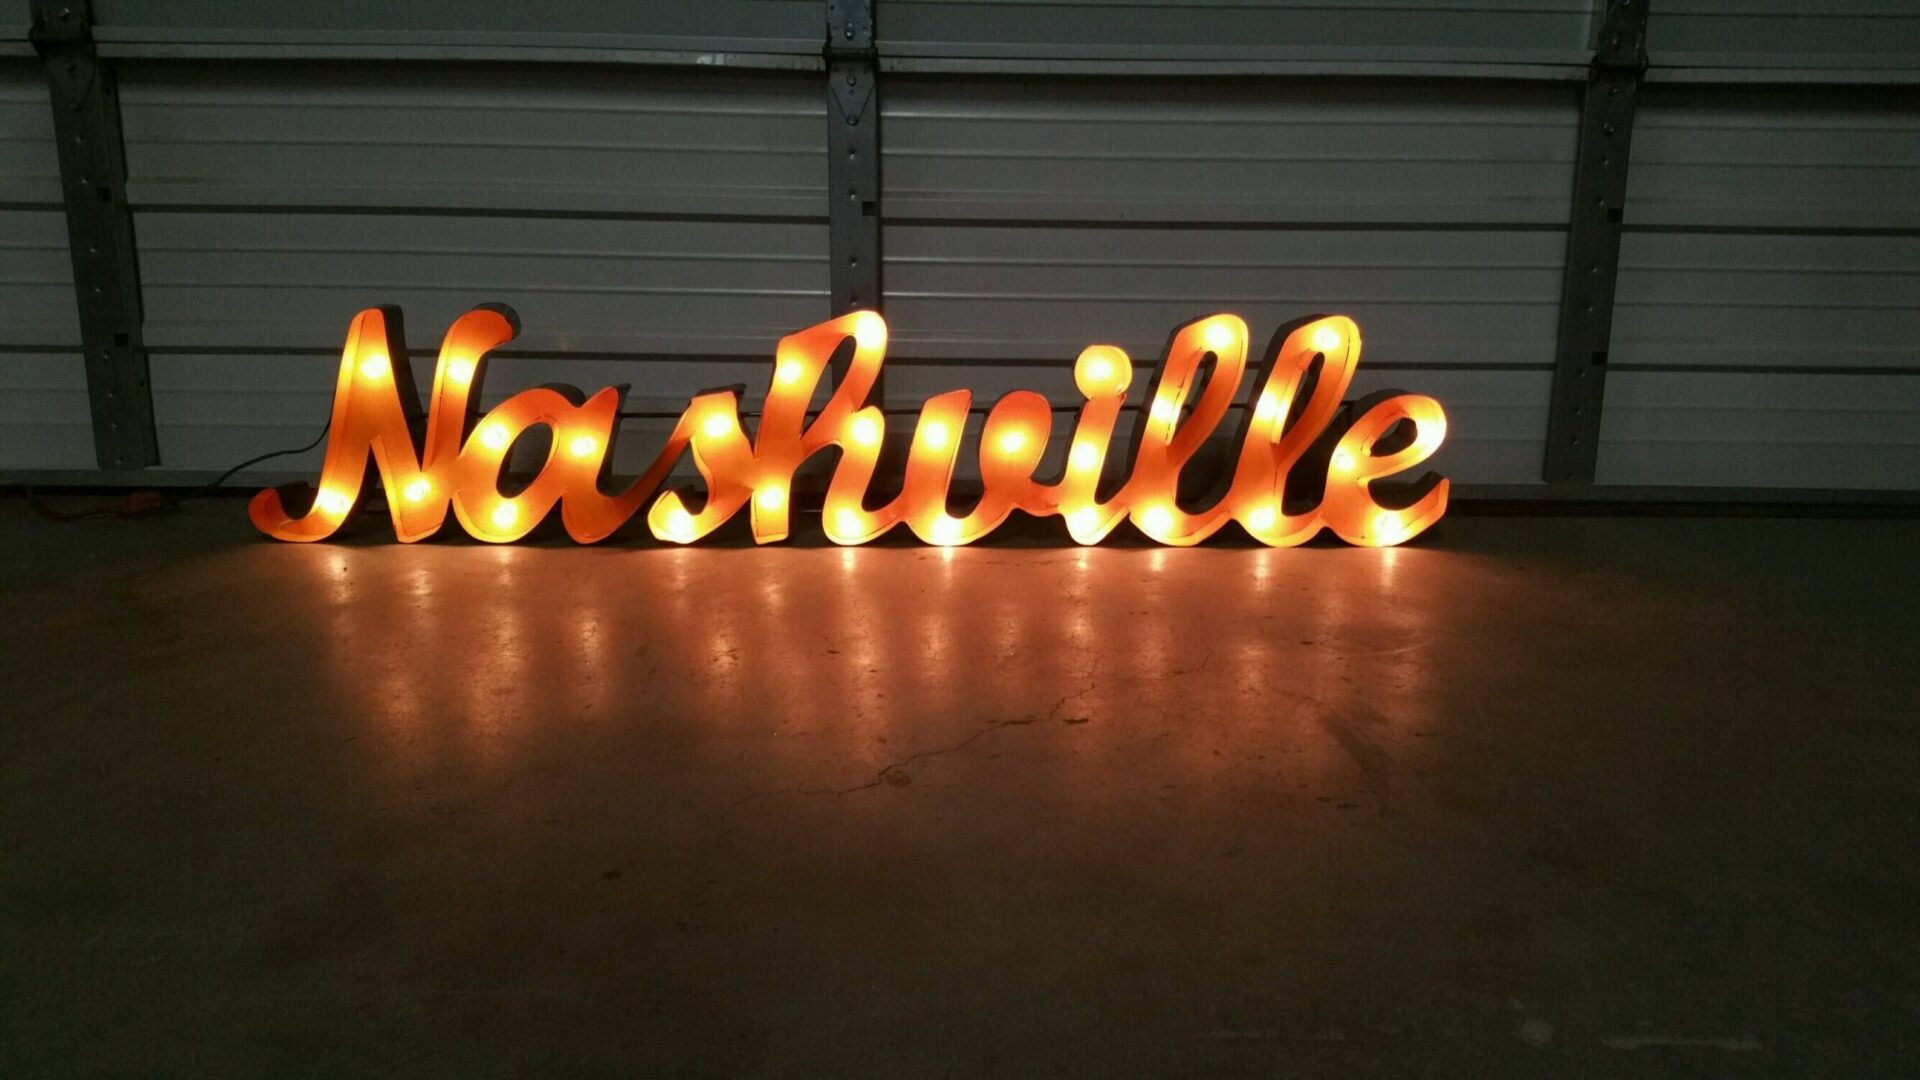 event lighting and decor rental from fadds events in nashville tn